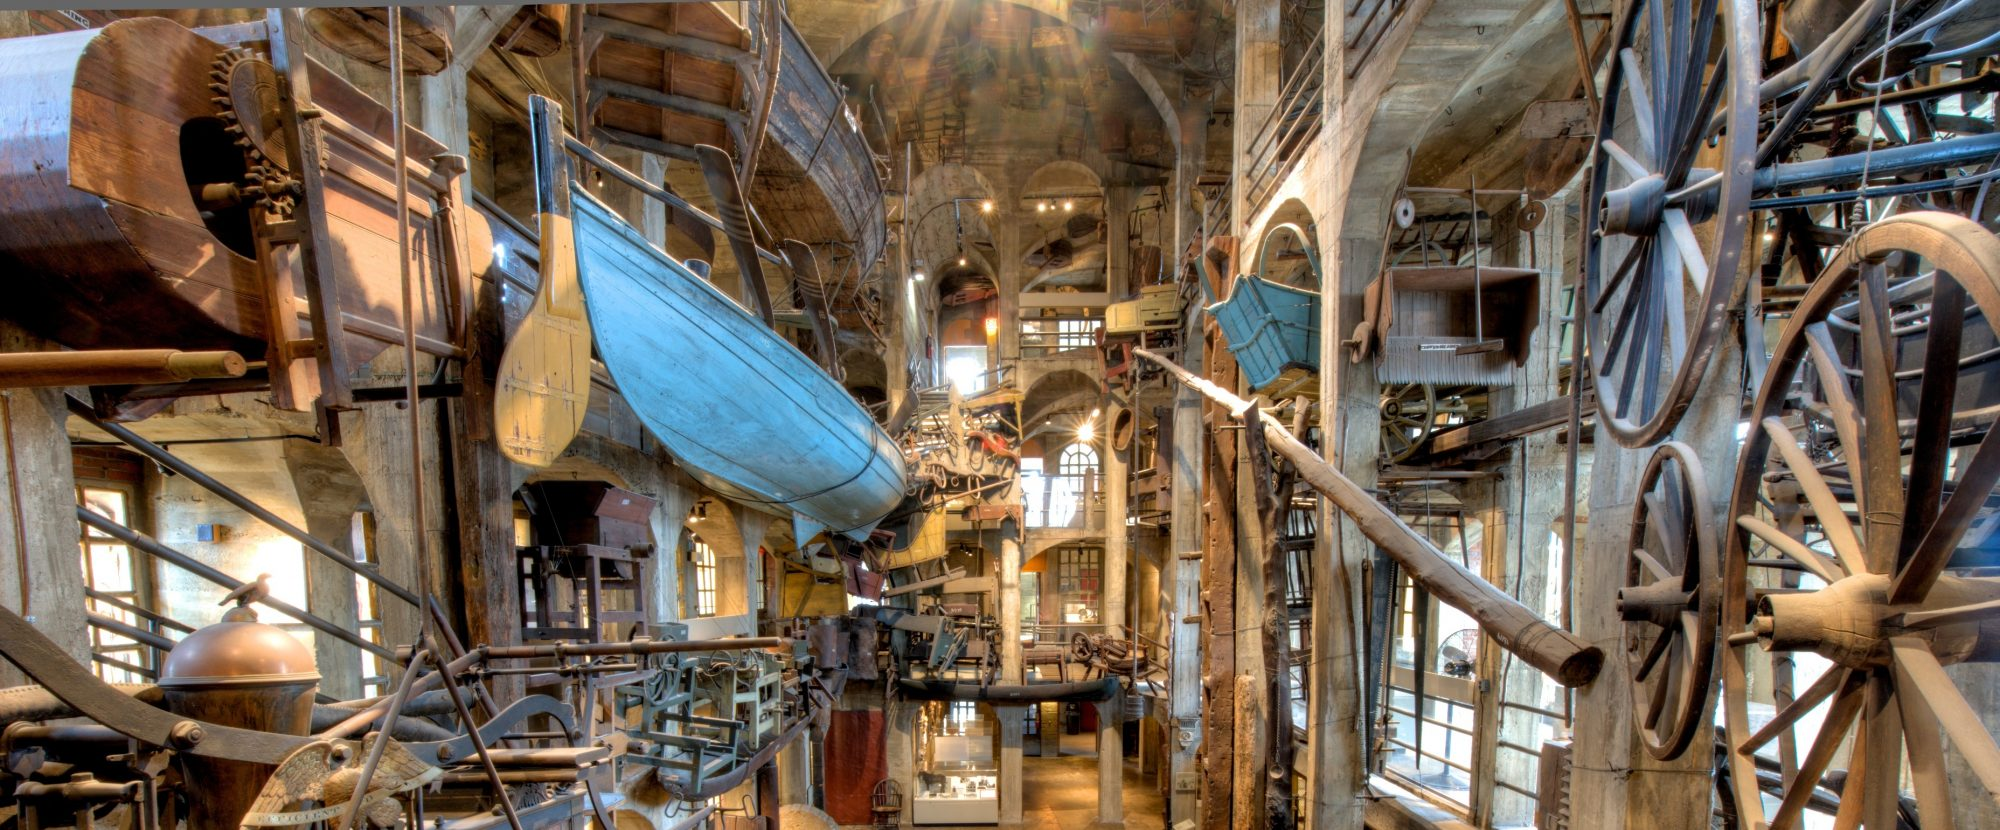 Delight In Discovery At Mercer Museum